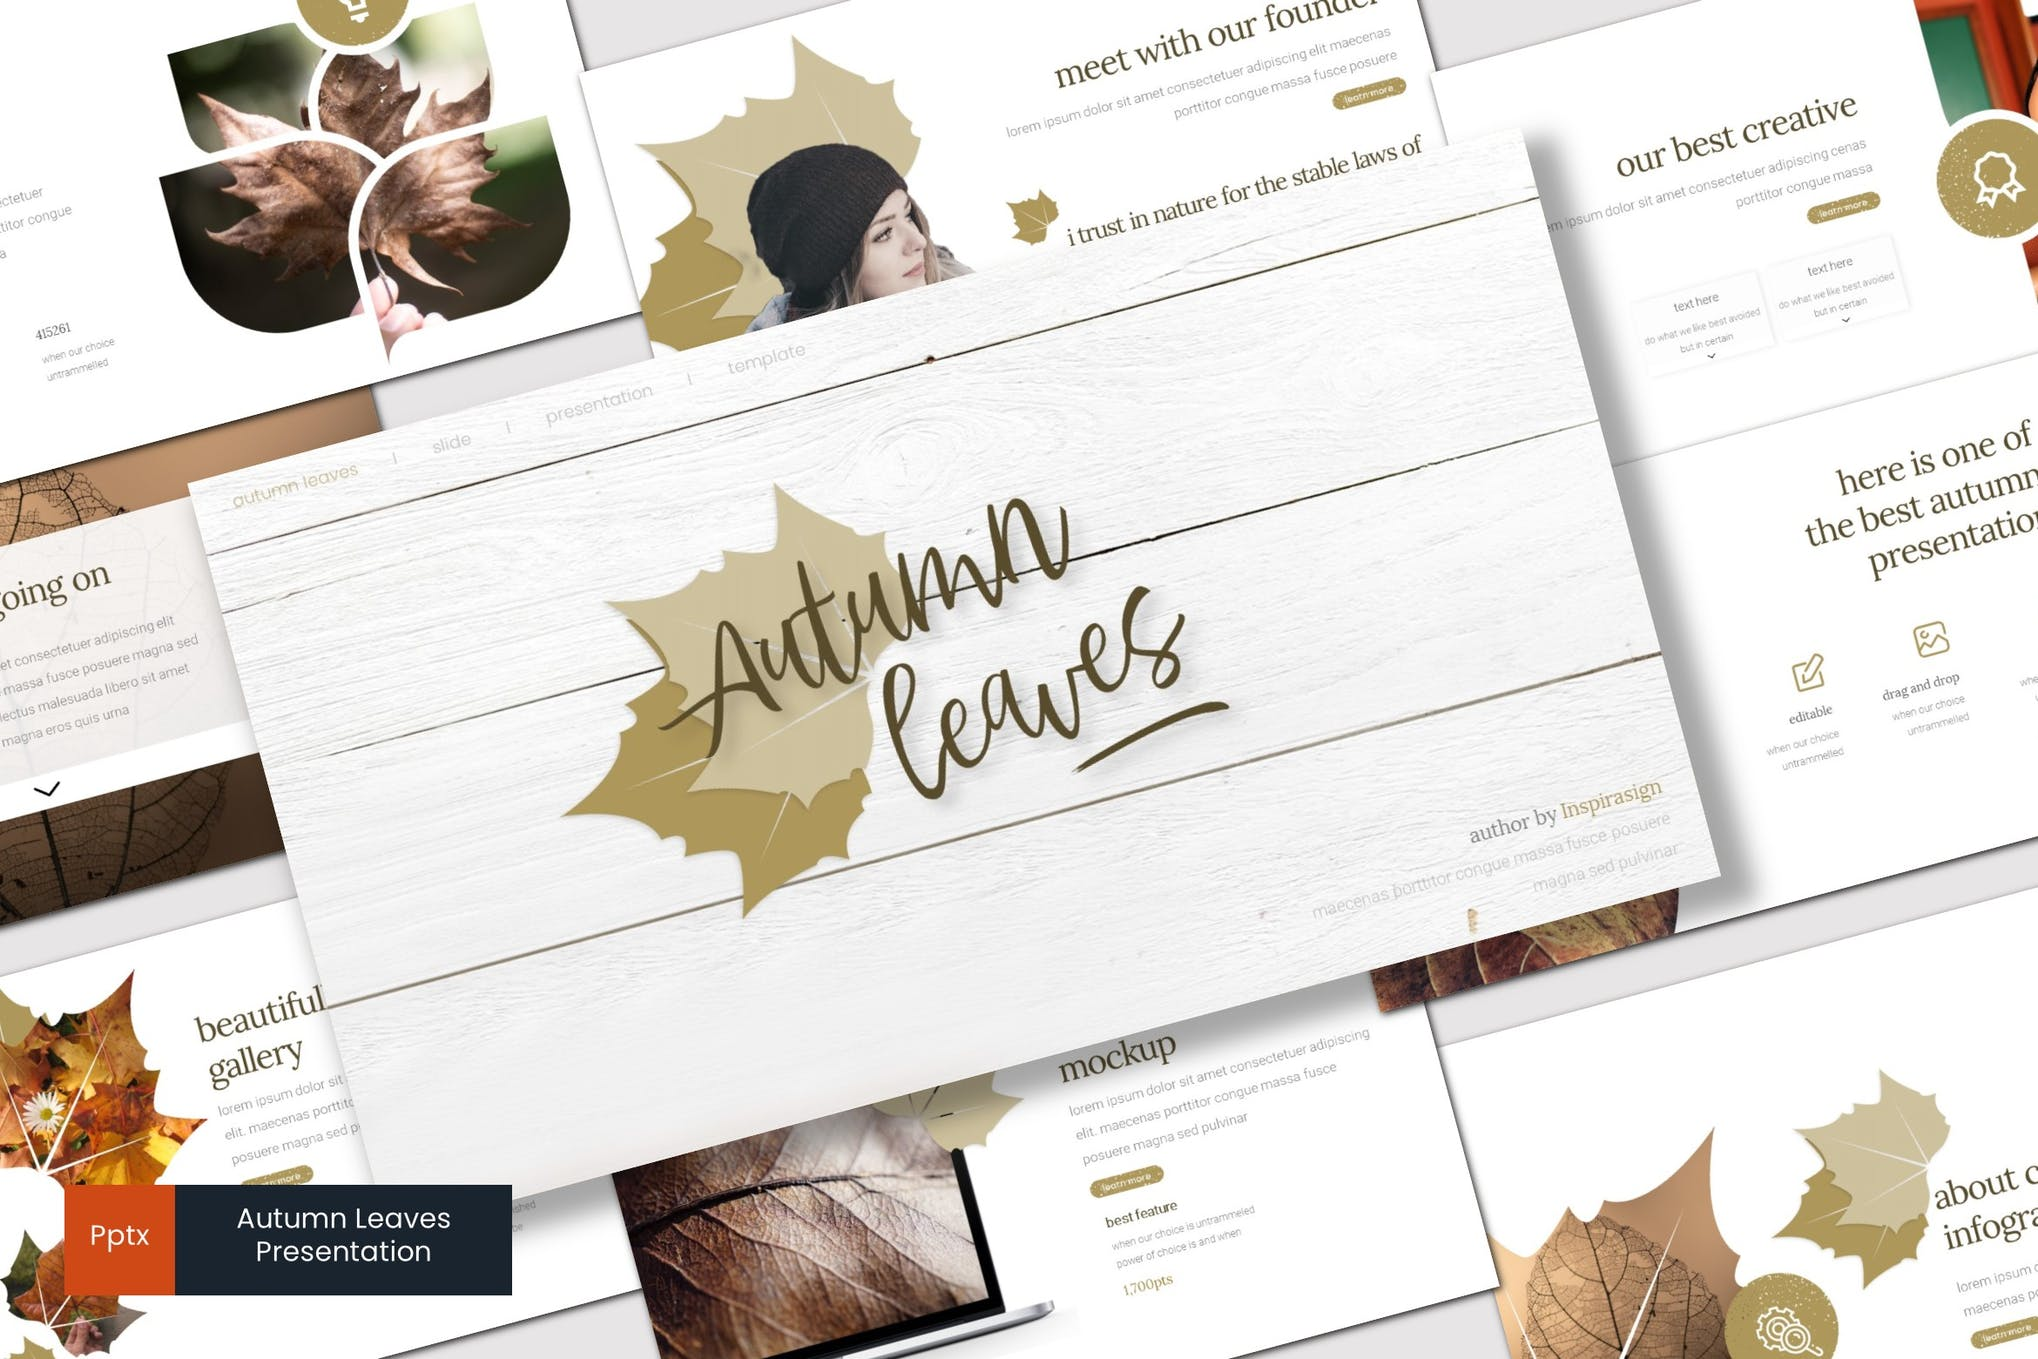 Autumn leaves - Powerpoint Template